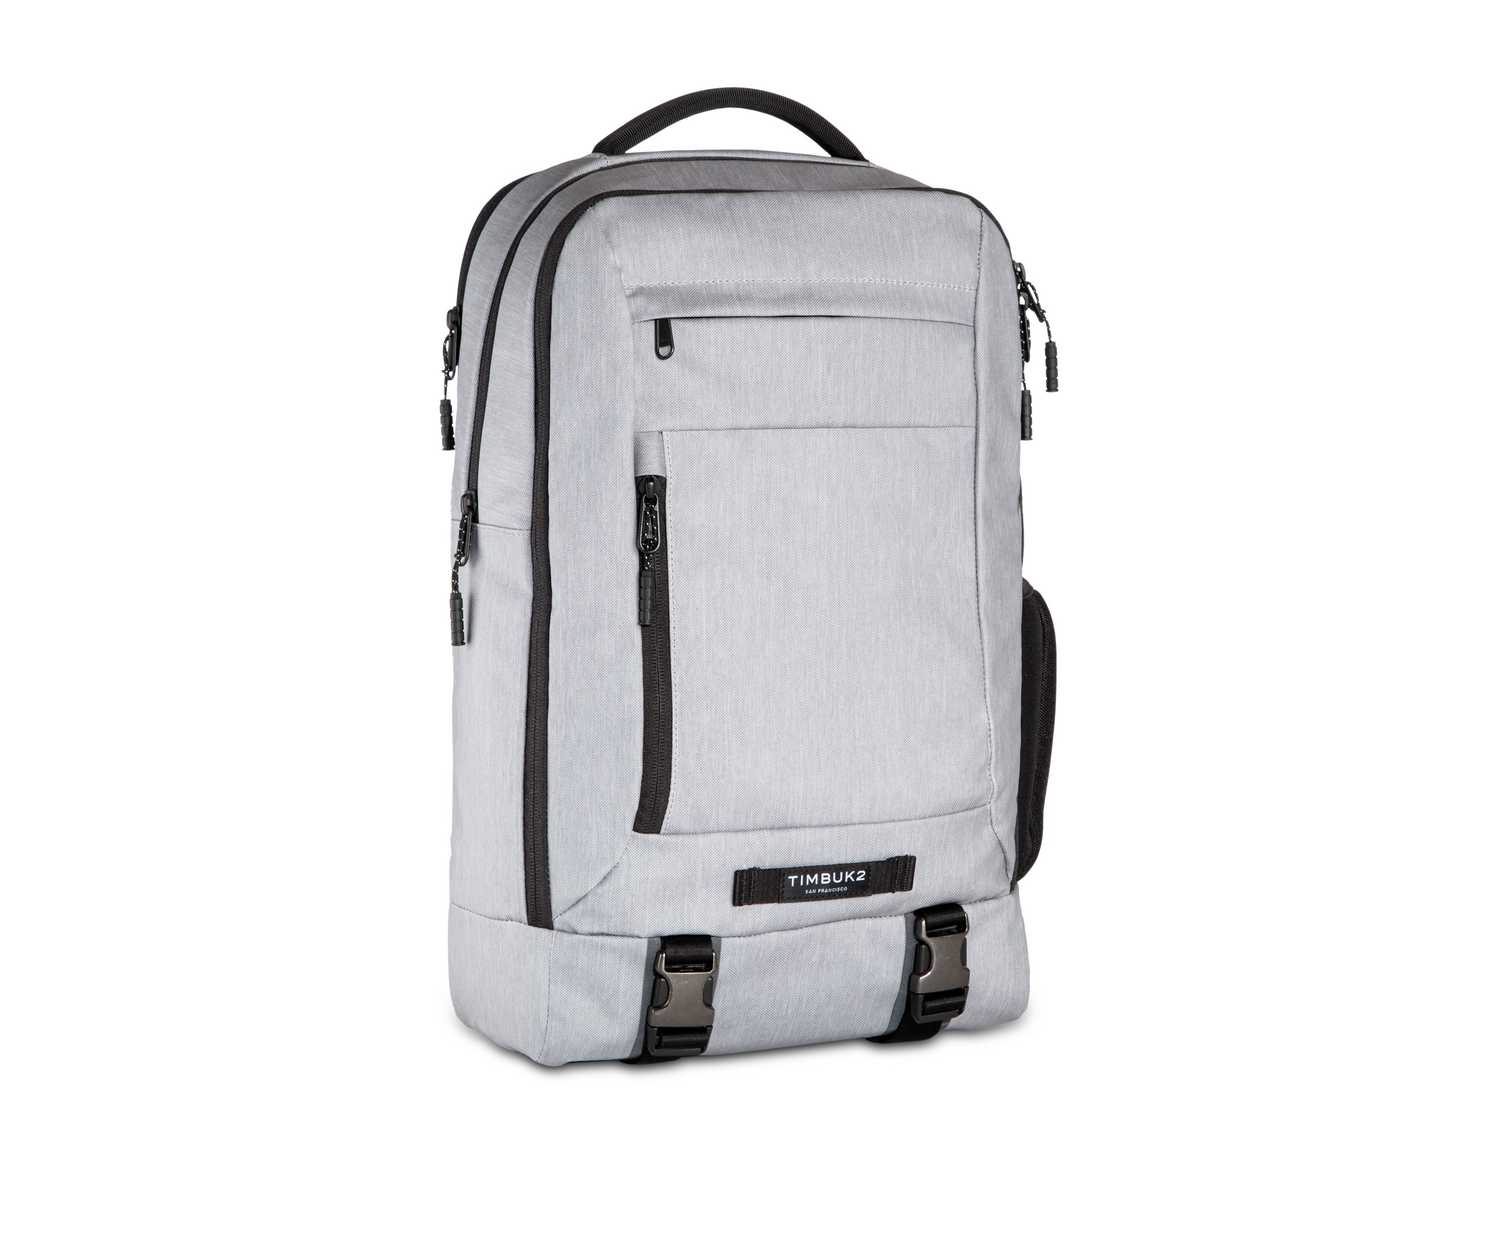 Timbuk2 1815 - The Authority Pack